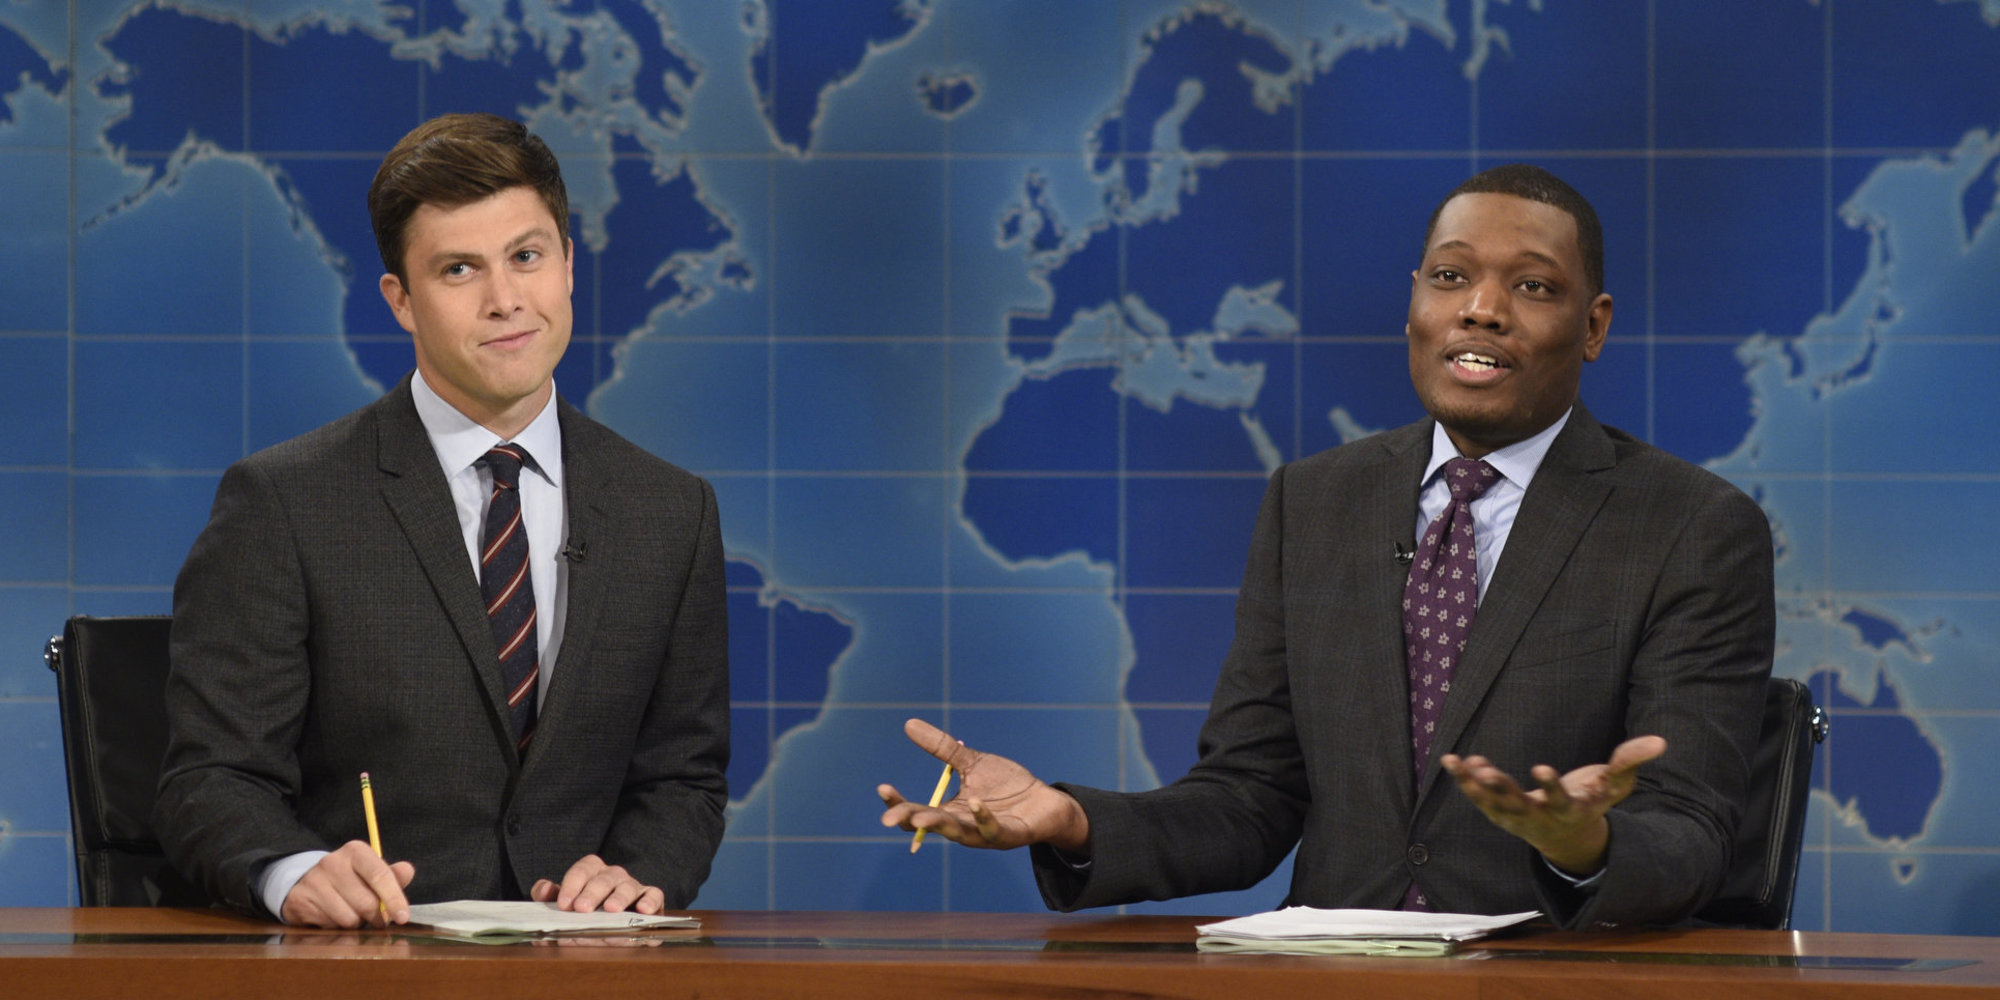 SNL May Get Weekend Update Spinoff Series